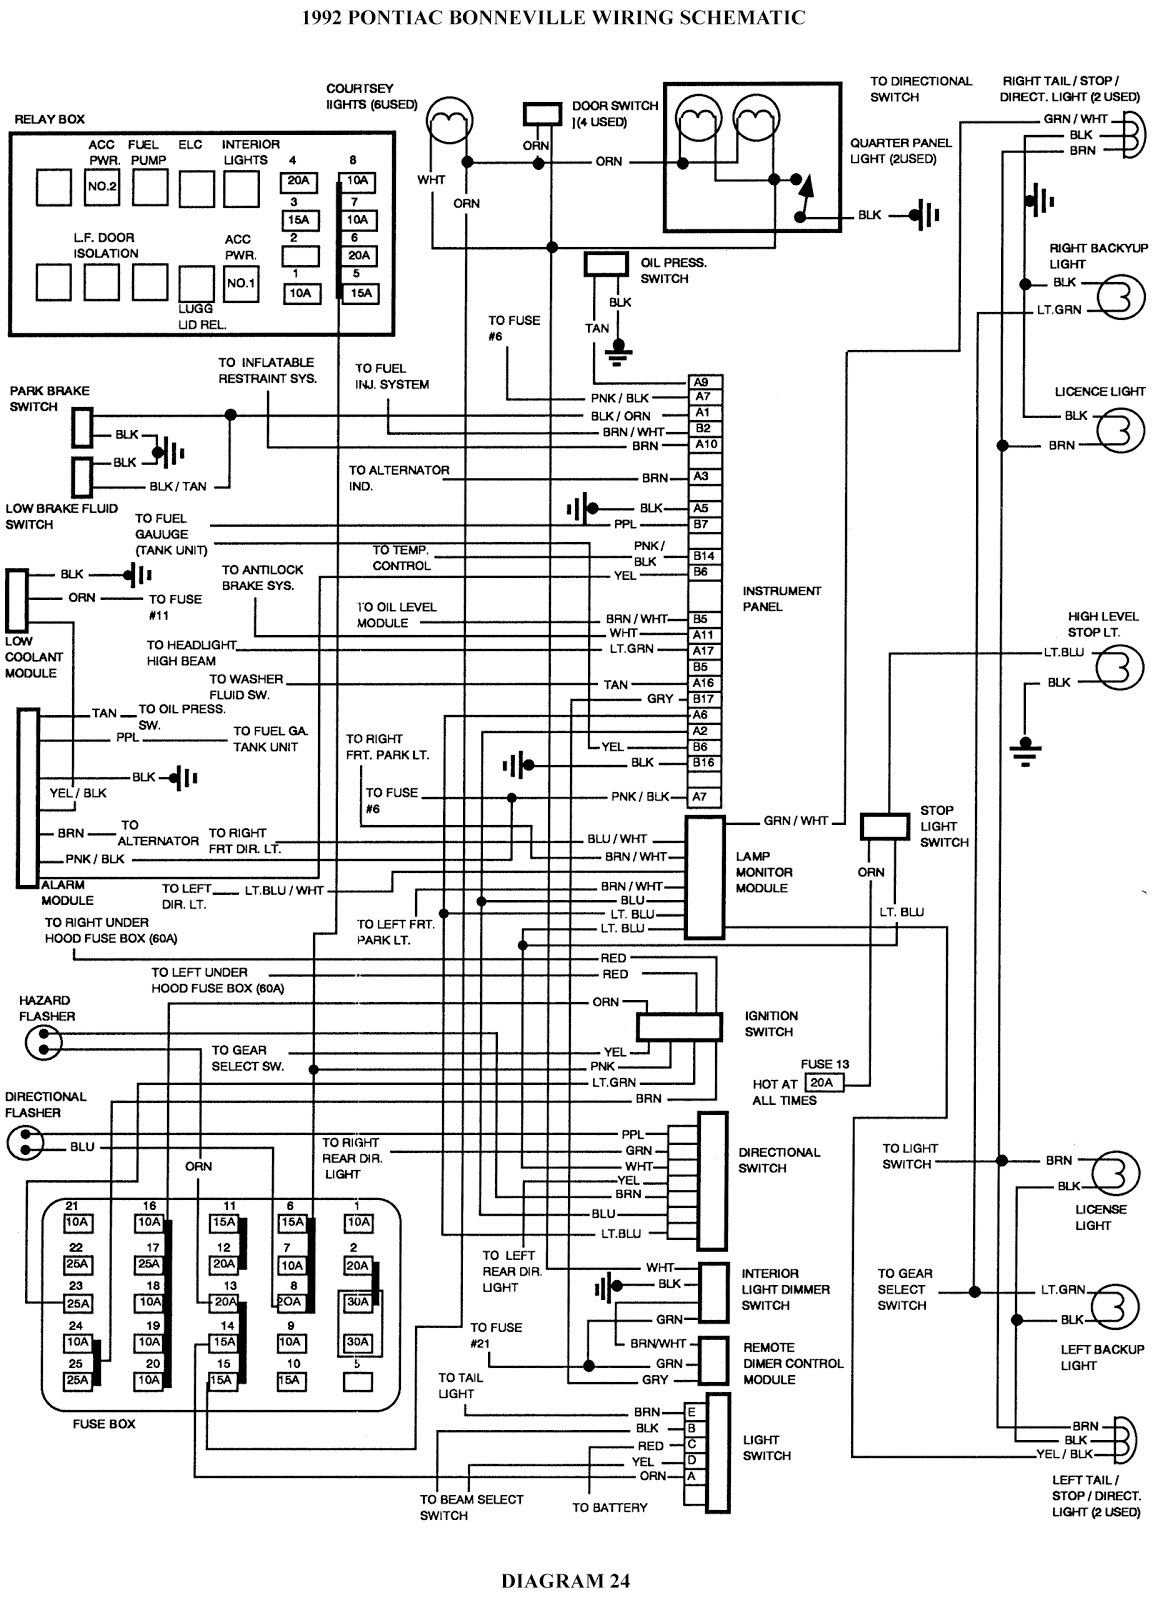 98 Pontiac Bonneville Wiring Diagram Not Lossing Grand Prix Fuse Box Third Level Rh 7 12 14 Jacobwinterstein Com Of 3800